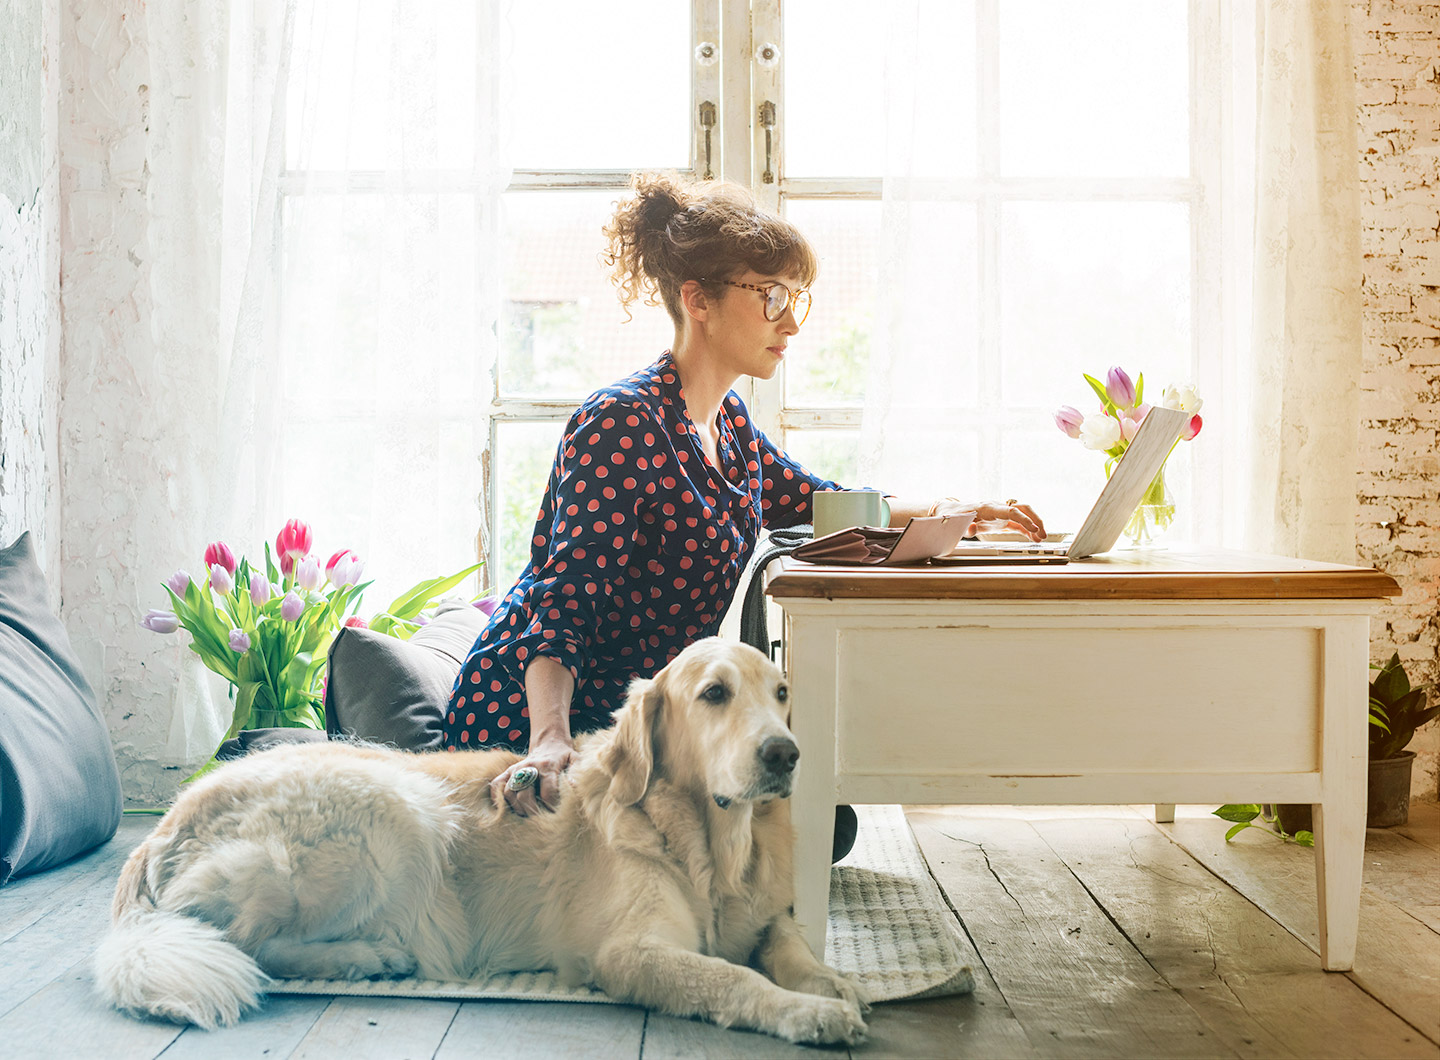 Photo of a woman looking at a laptop with a yellow labrador retriever sleeping next to her